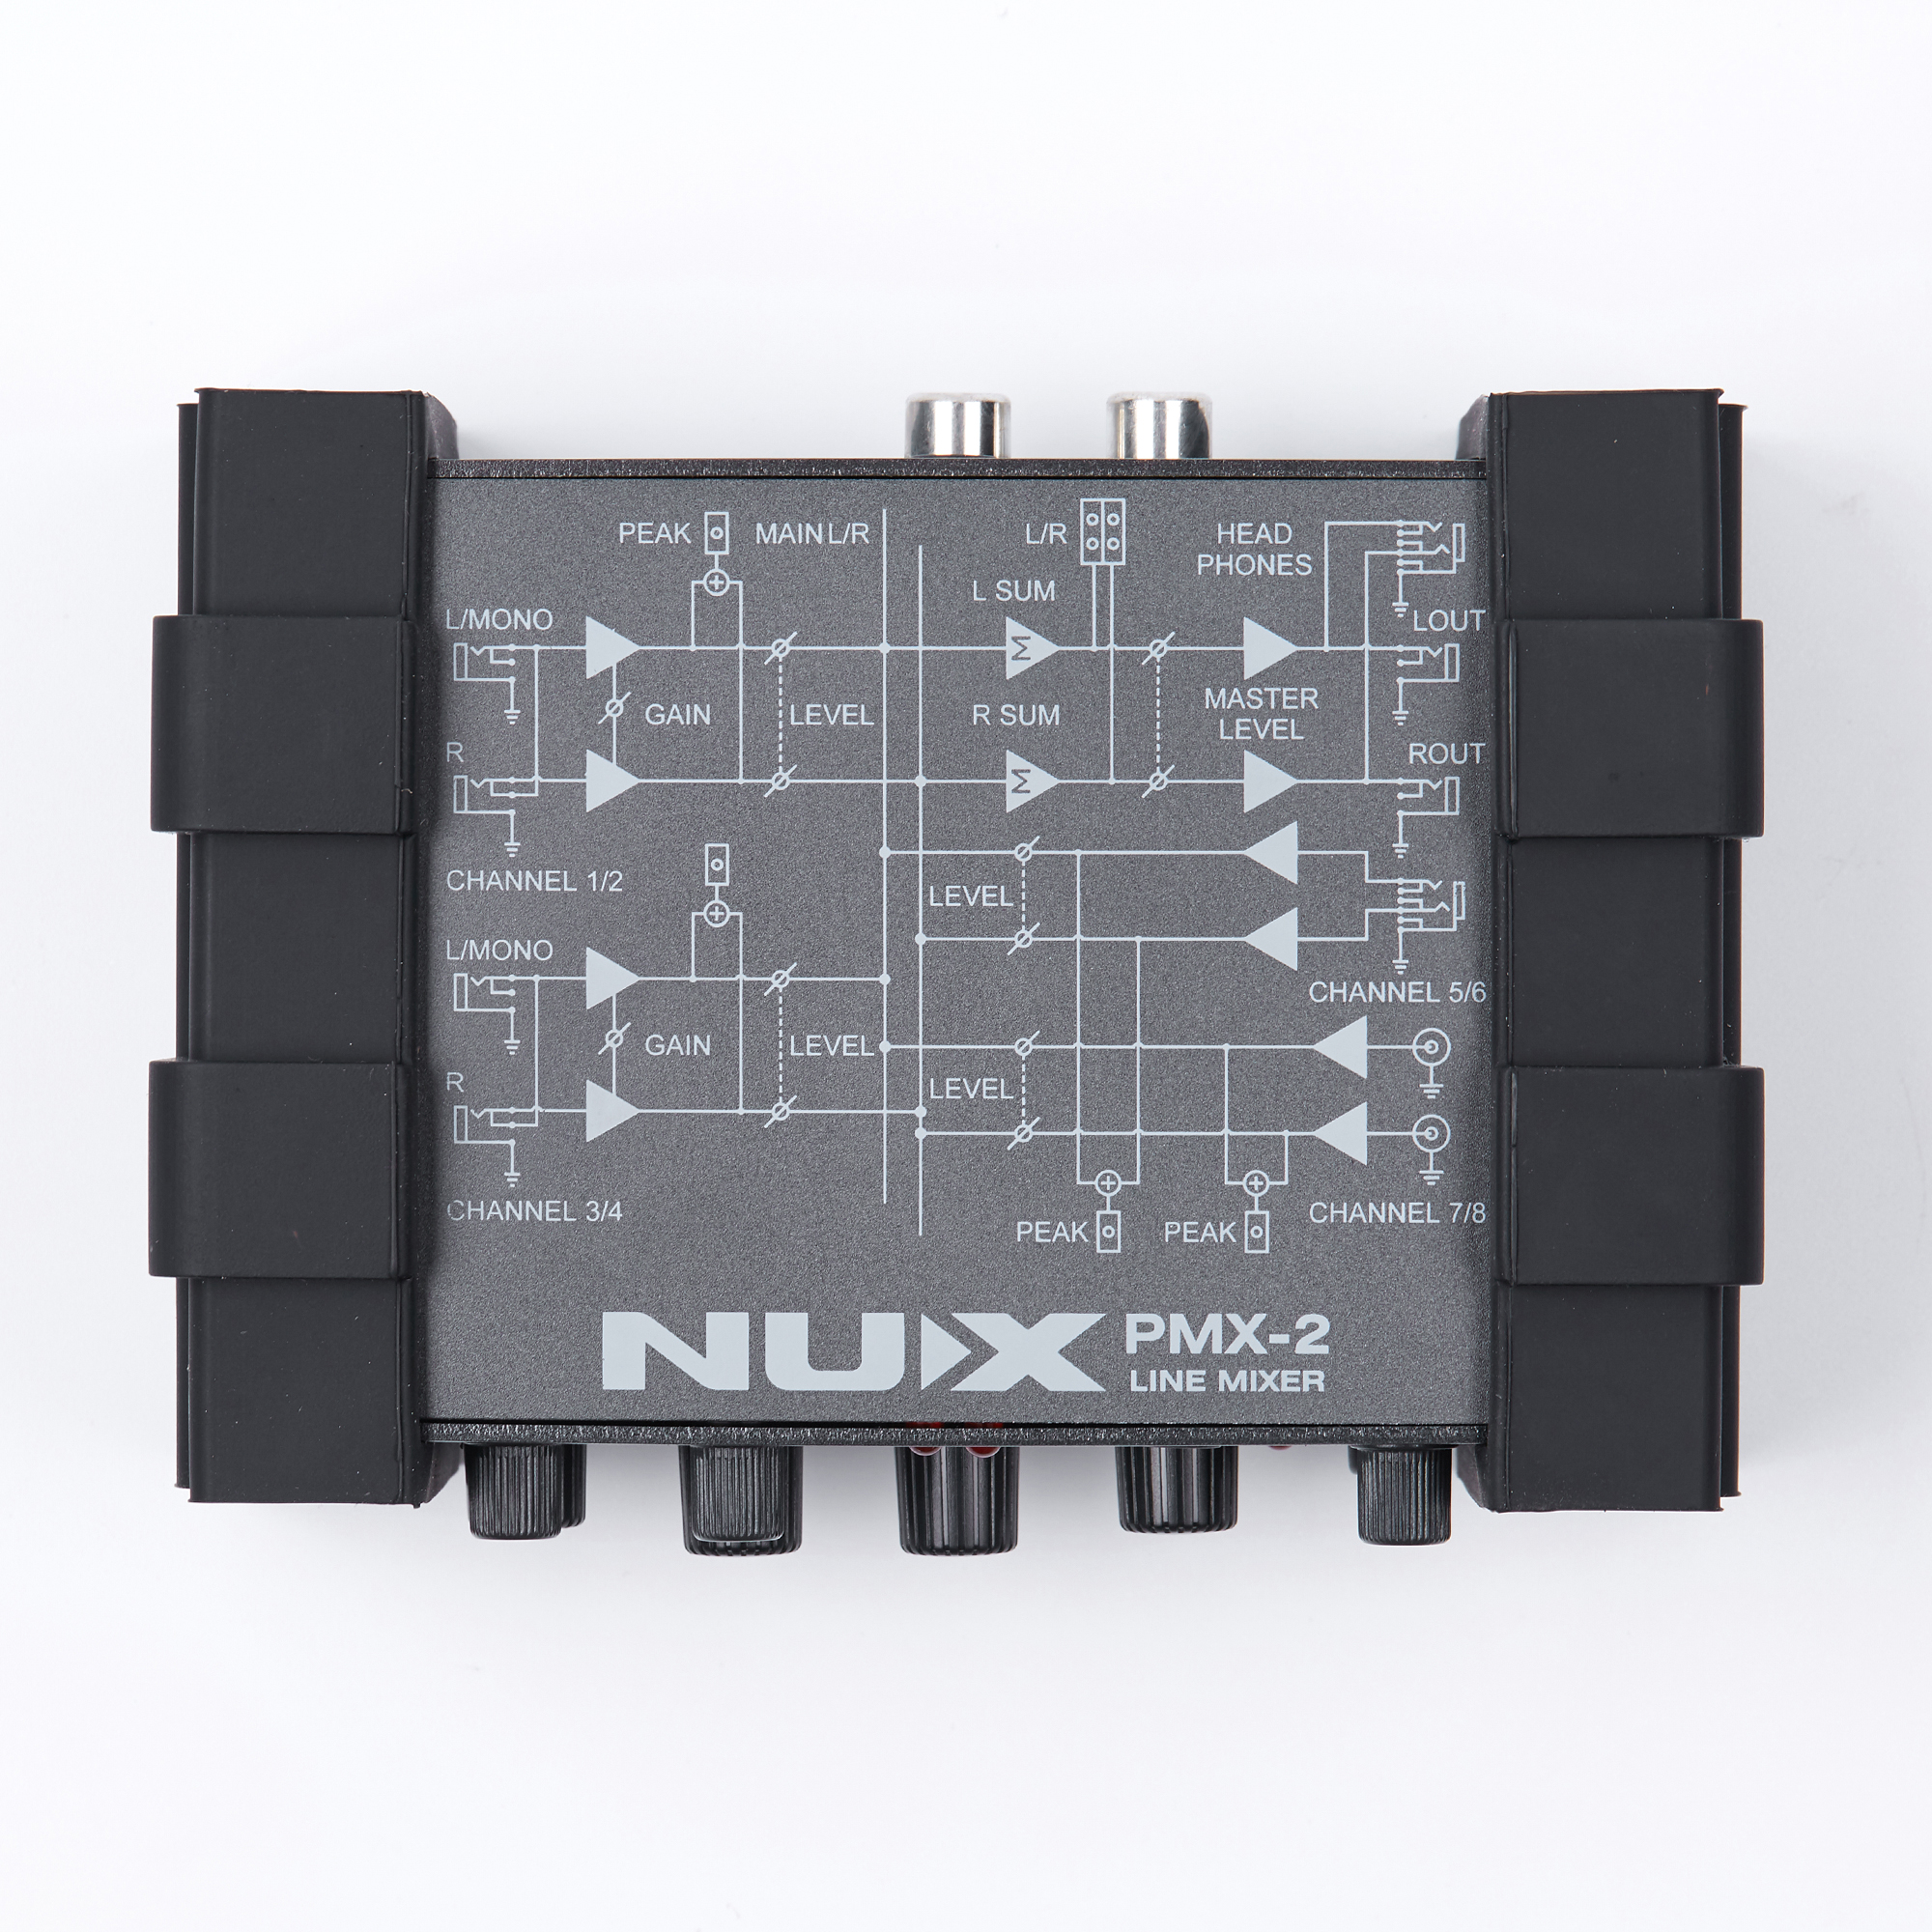 Gain Control 8 Inputs and 2 Outputs NUX PMX-2 Multi-Channel Mini Mixer 30 Musical Instruments Accessories for Guitar Bass Player пылесос с пылесборником miele sgda3 completec3 parquet xl